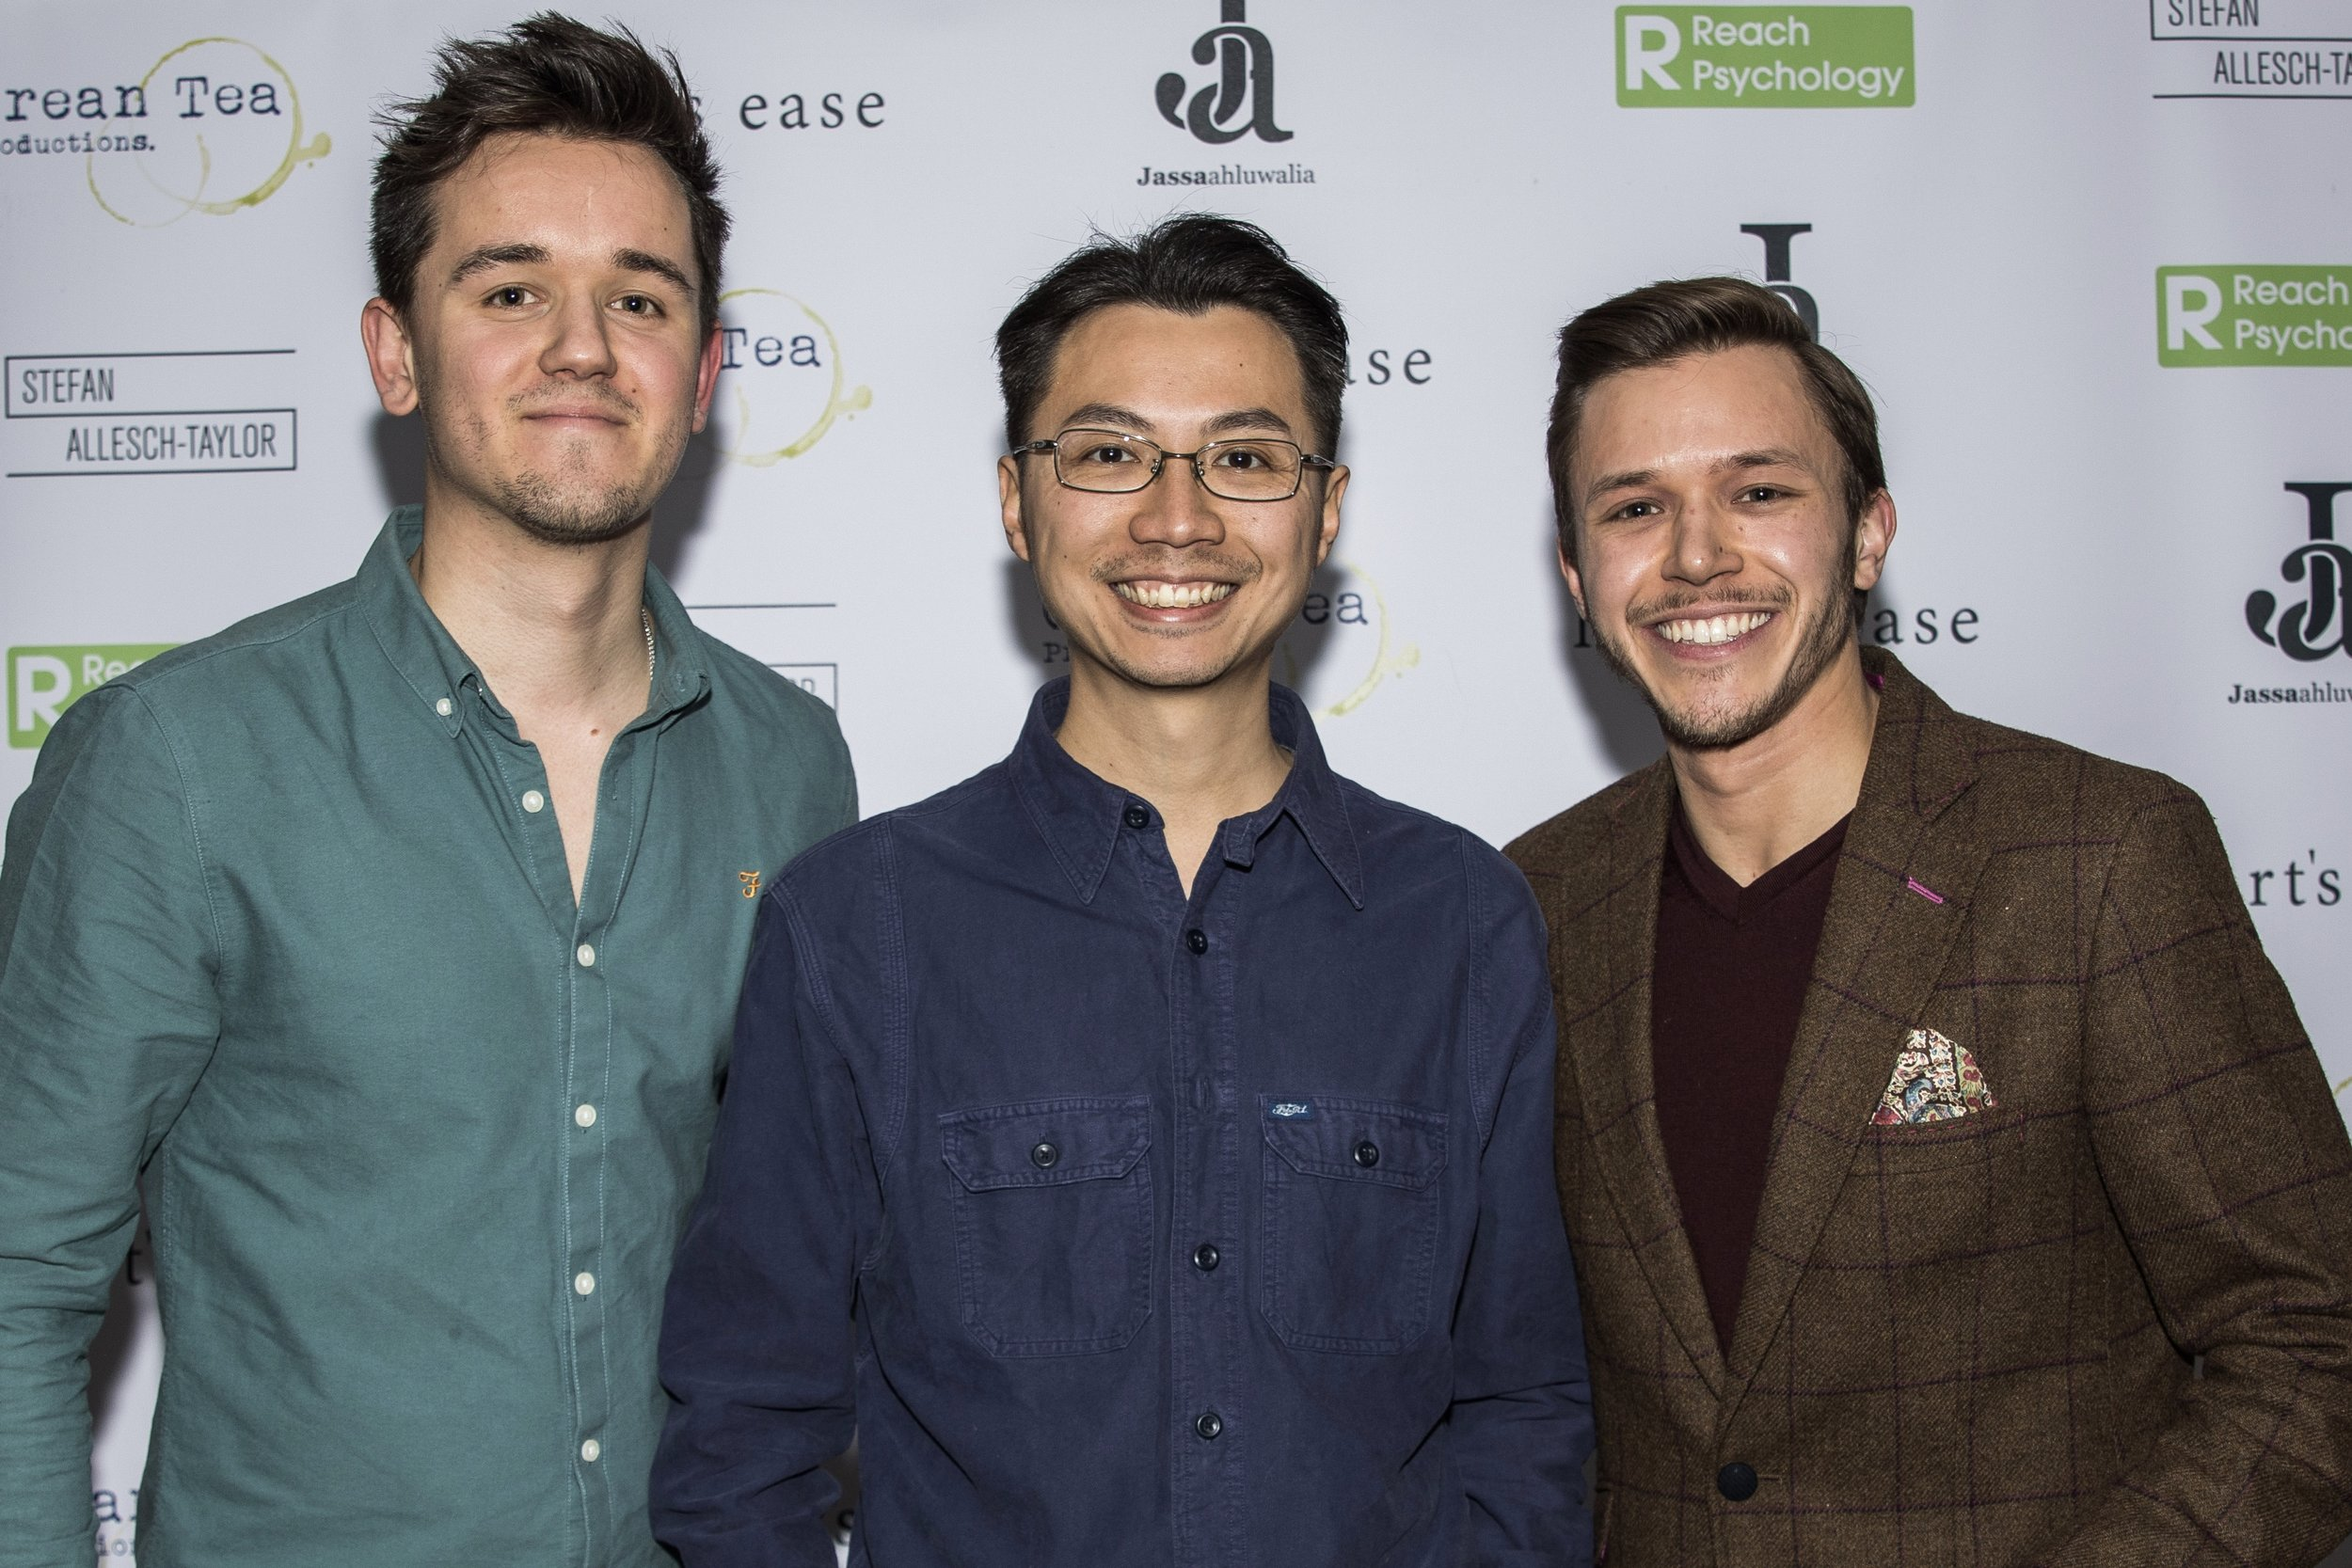 Olly Fawcett, Christopher CF Chow and Jassa Ahluwalia attend the cast and crew screening of Heart's Ease.